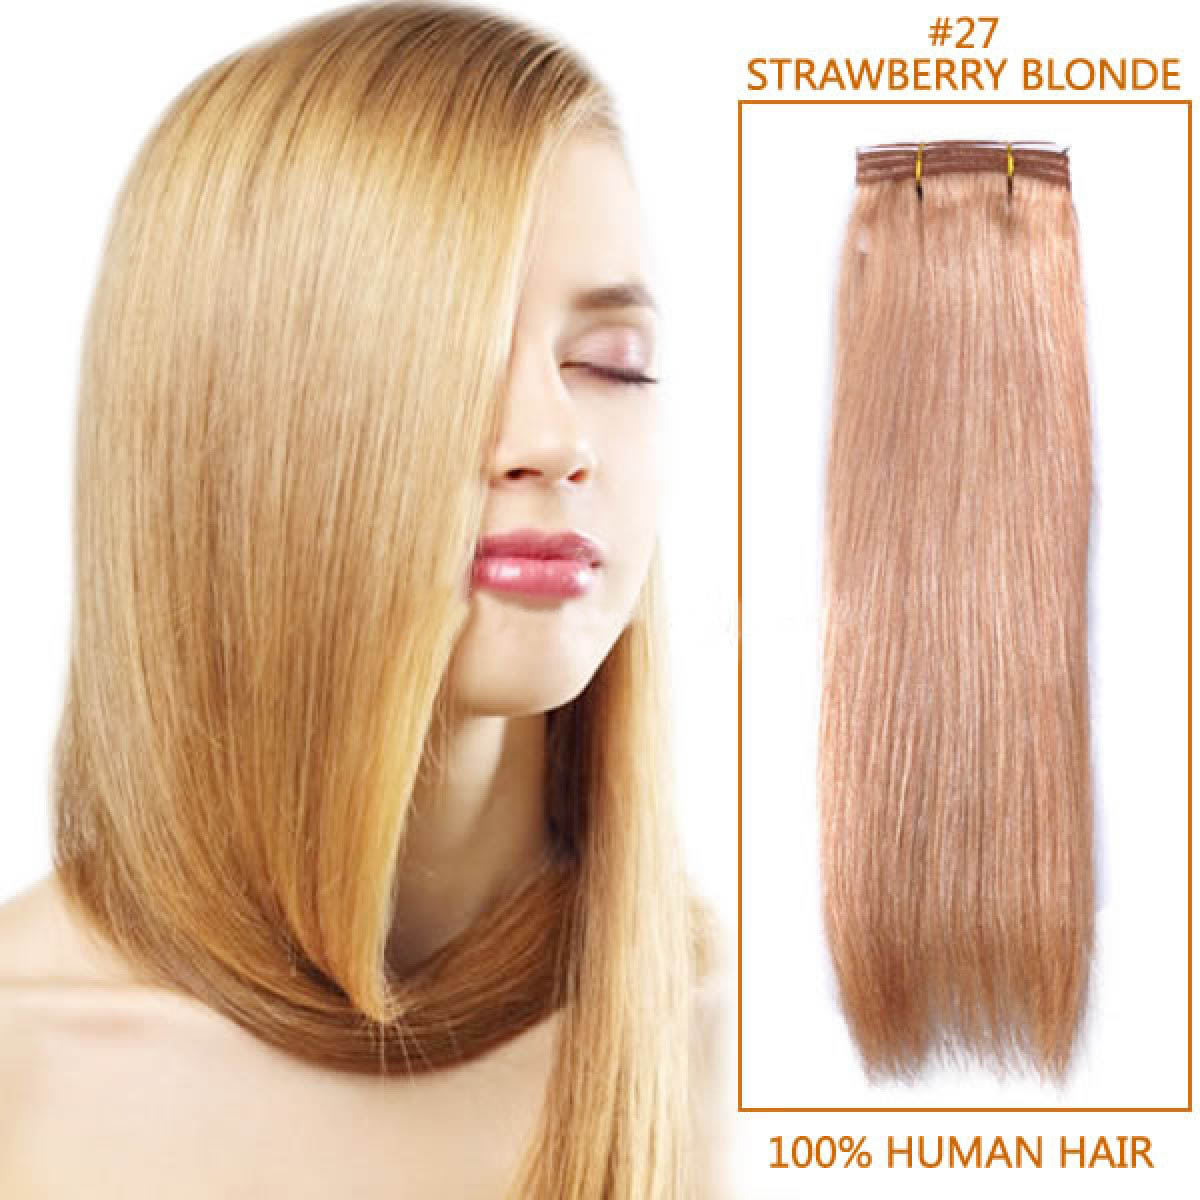 14 Inch 27 Strawberry Blonde Straight Indian Remy Hair Wefts